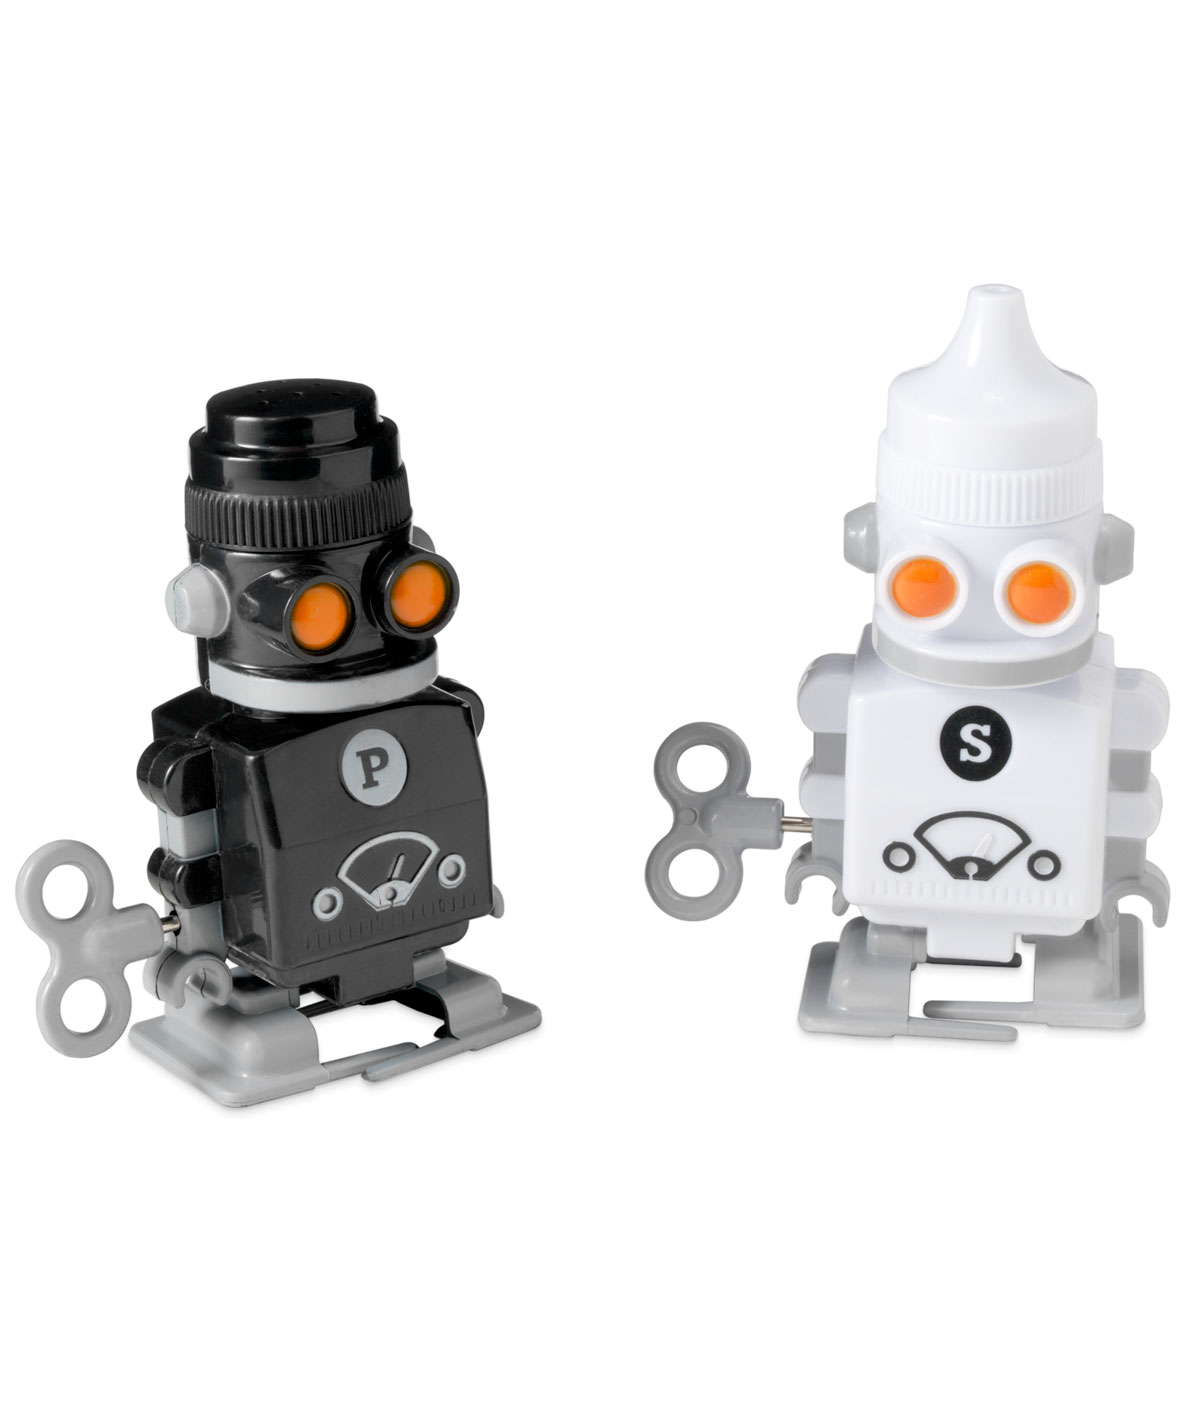 Robot salt and pepper shakers 105 awesome but affordable Salt and pepper robots